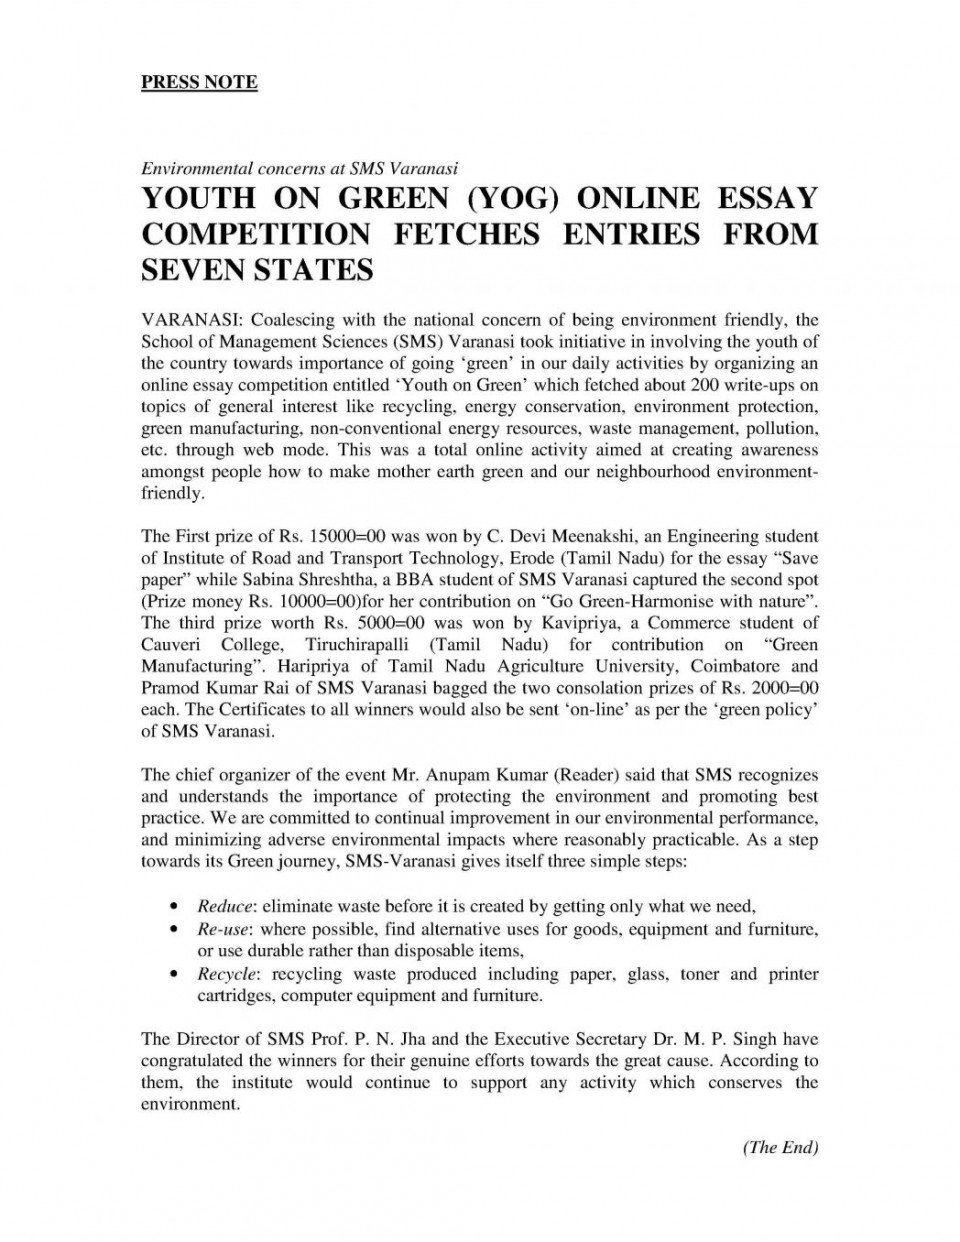 020 Best Essays For College Essay On Good Habits How Tot Application Online Yog Press Re About Yourself Examples Your Background Failure Prompt Off Hook 1048x1356 Example Amazing To Start An With A Do U Book Autobiography 960